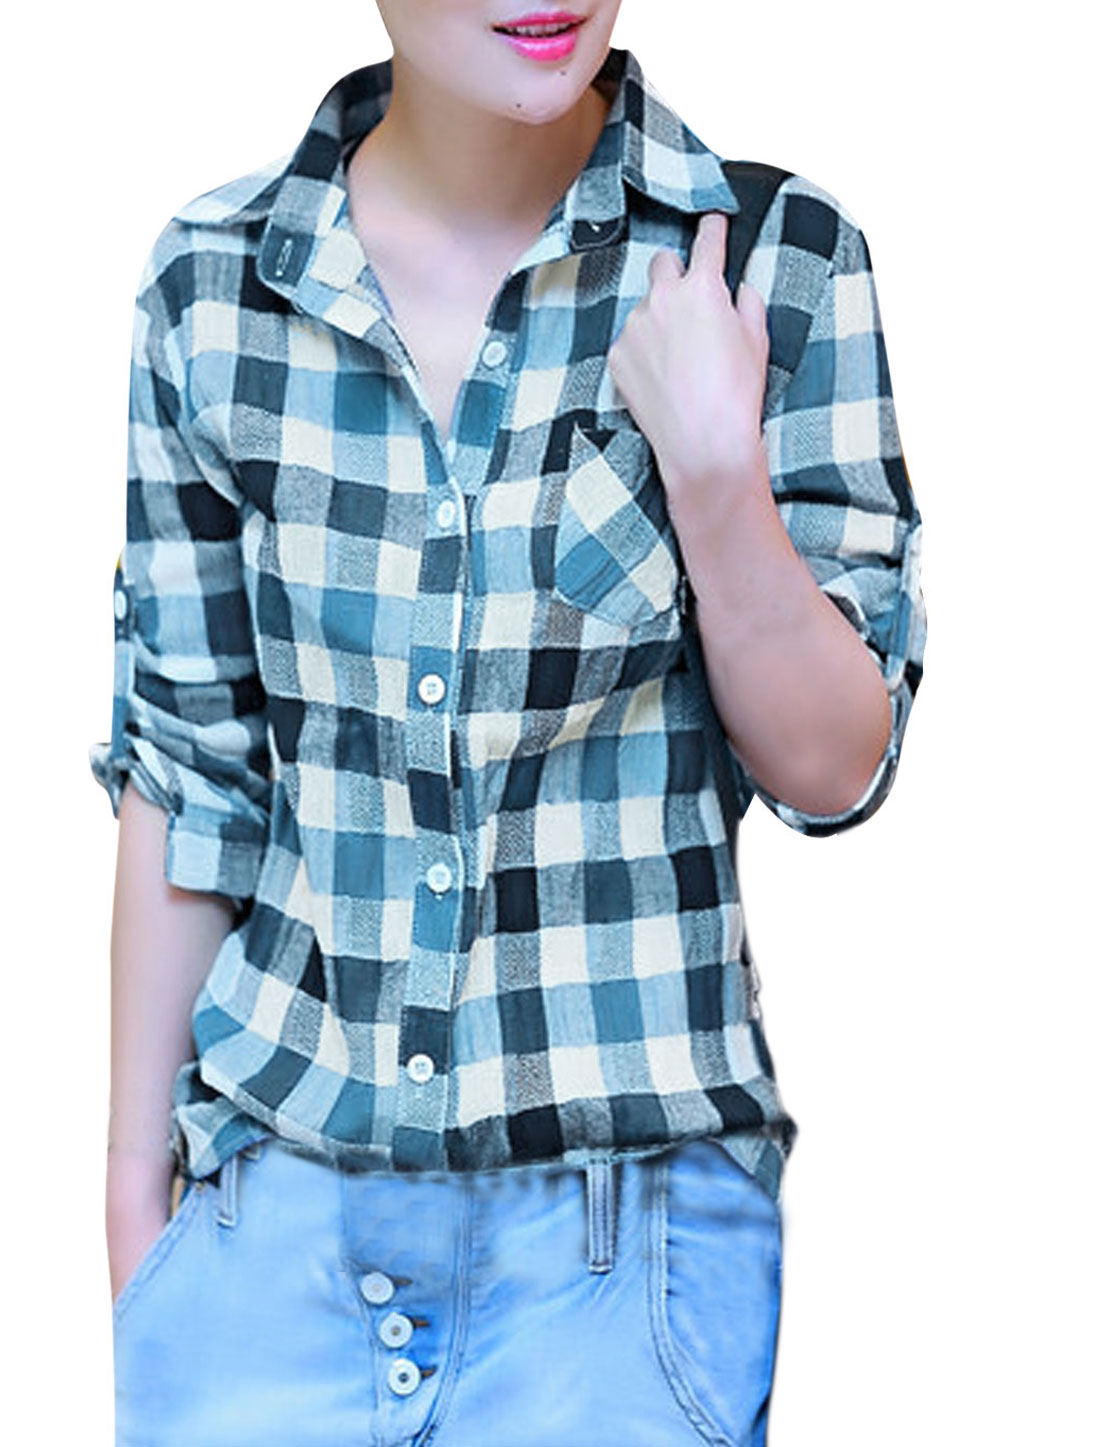 Women One Pocket Chest Plaids Pattern Cozy Fit Shirt Navy Blue White S